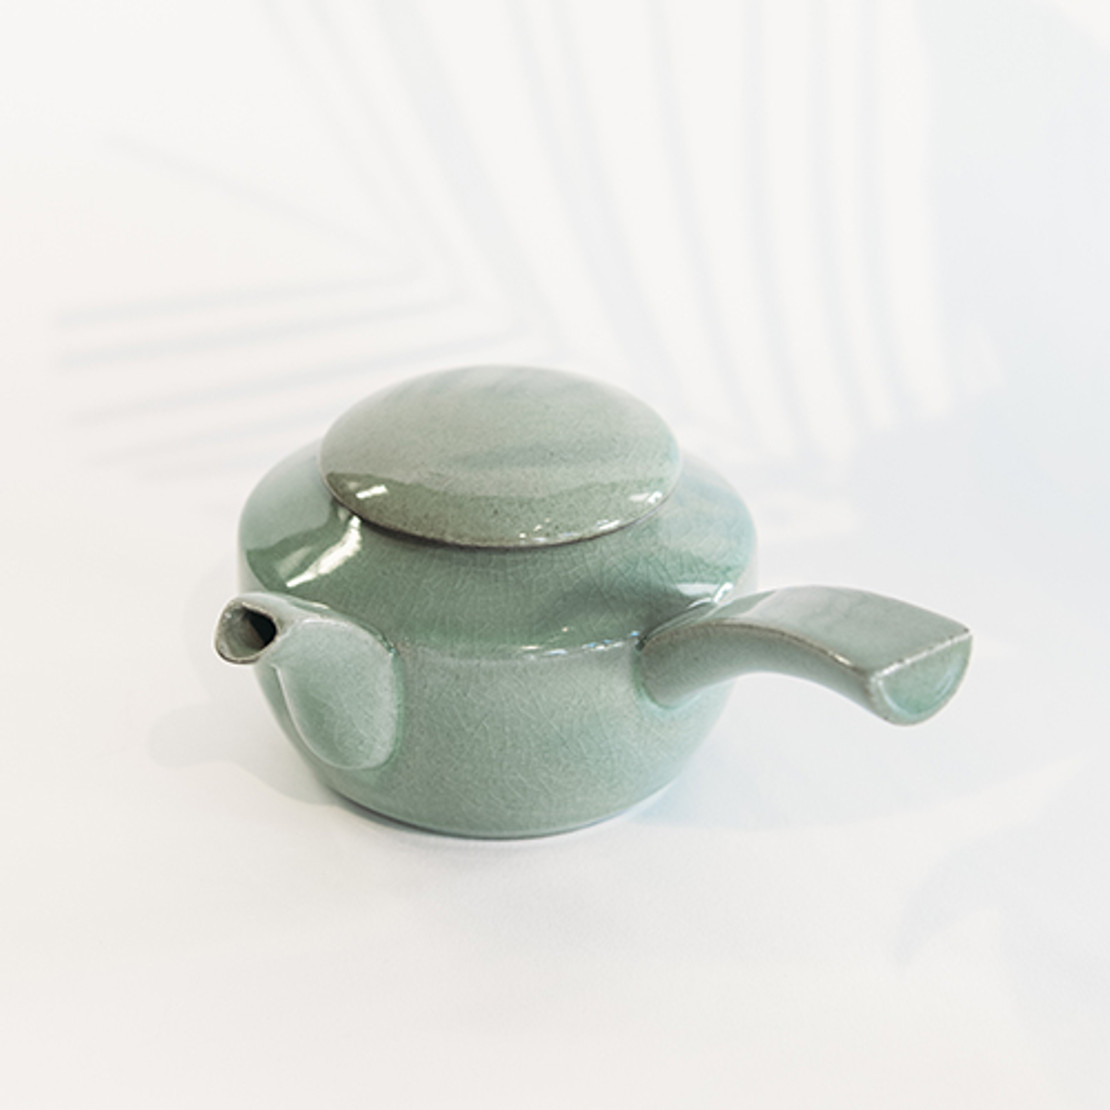 Tea Resources: Teaware - The Teapot Edition